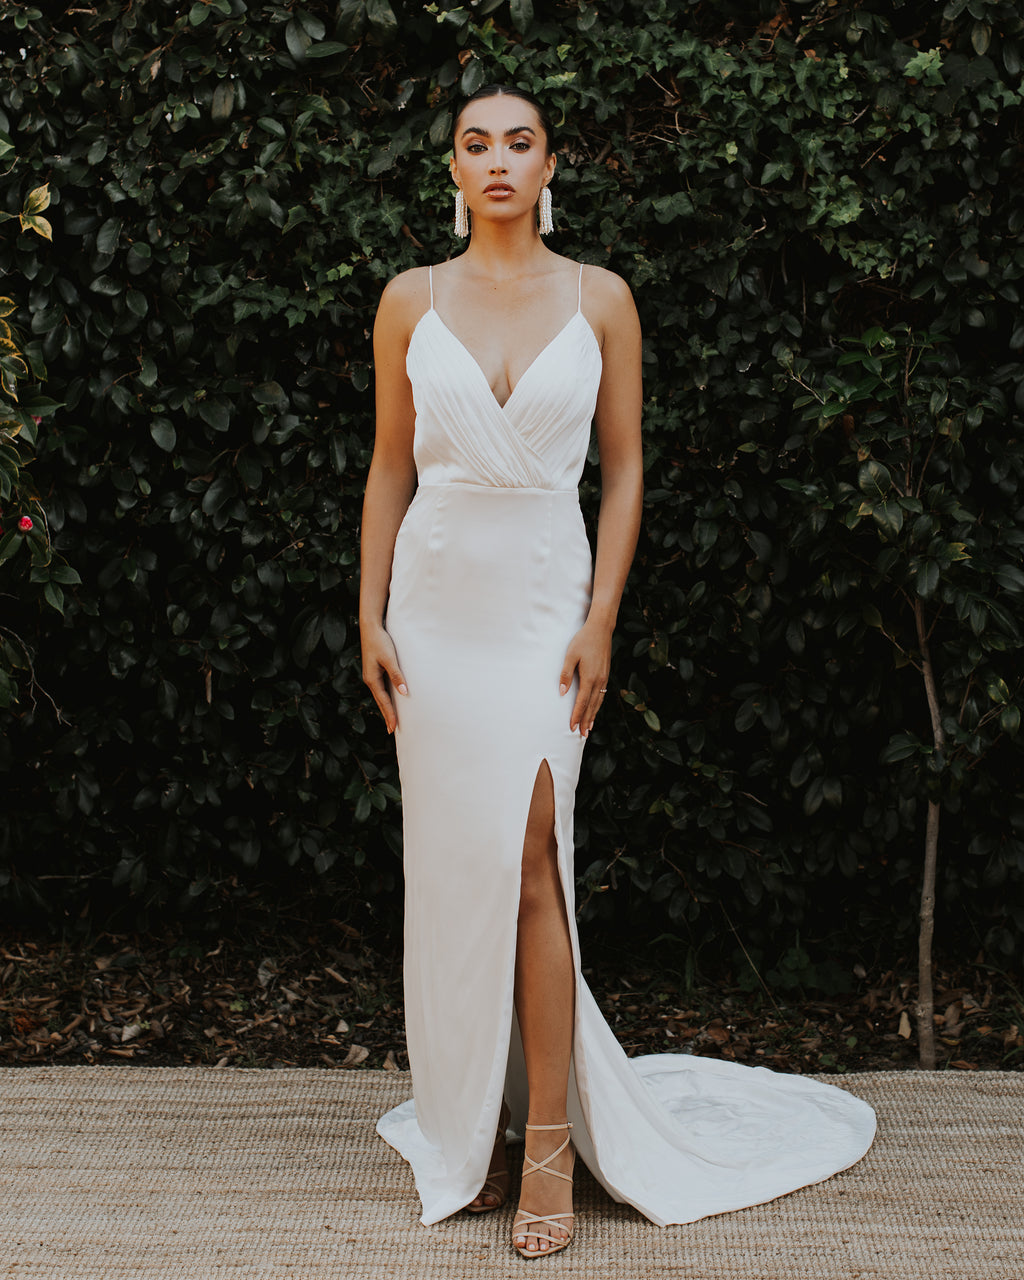 Model wearing Avalon bridal gown in Ivory by Katie May